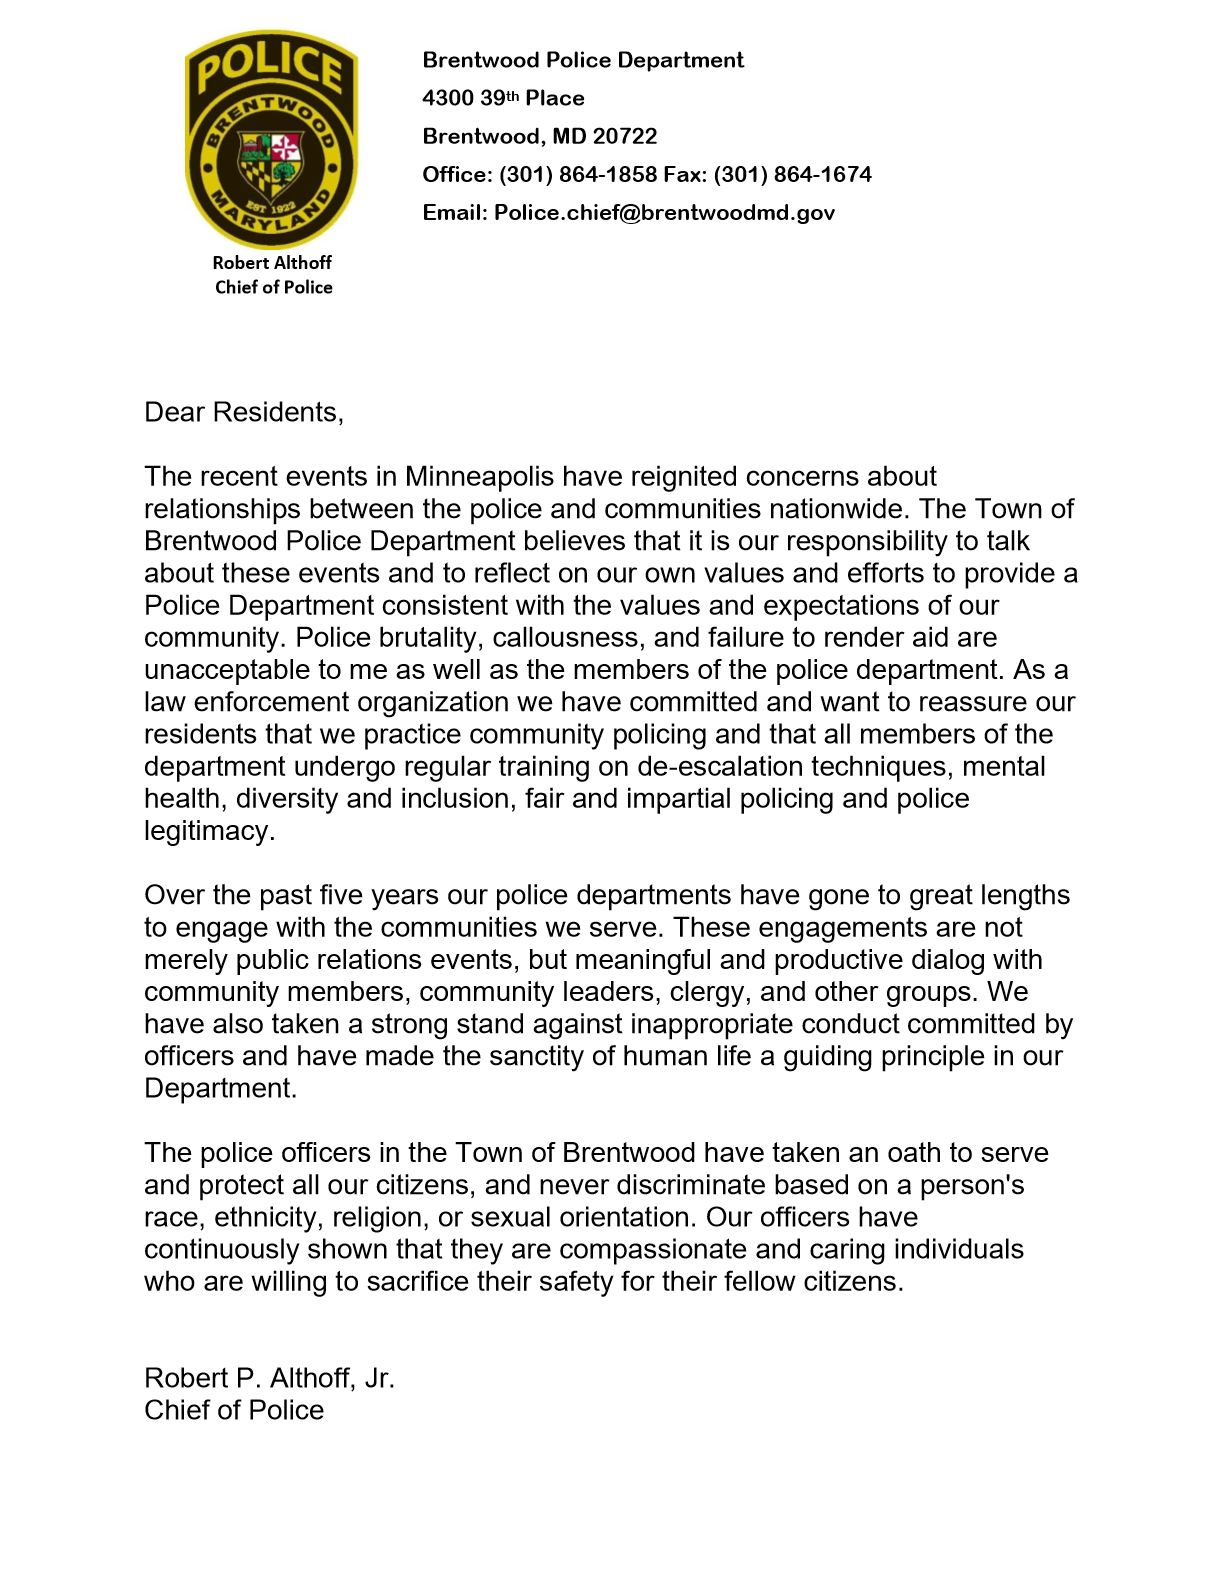 2020 Letter to Residents